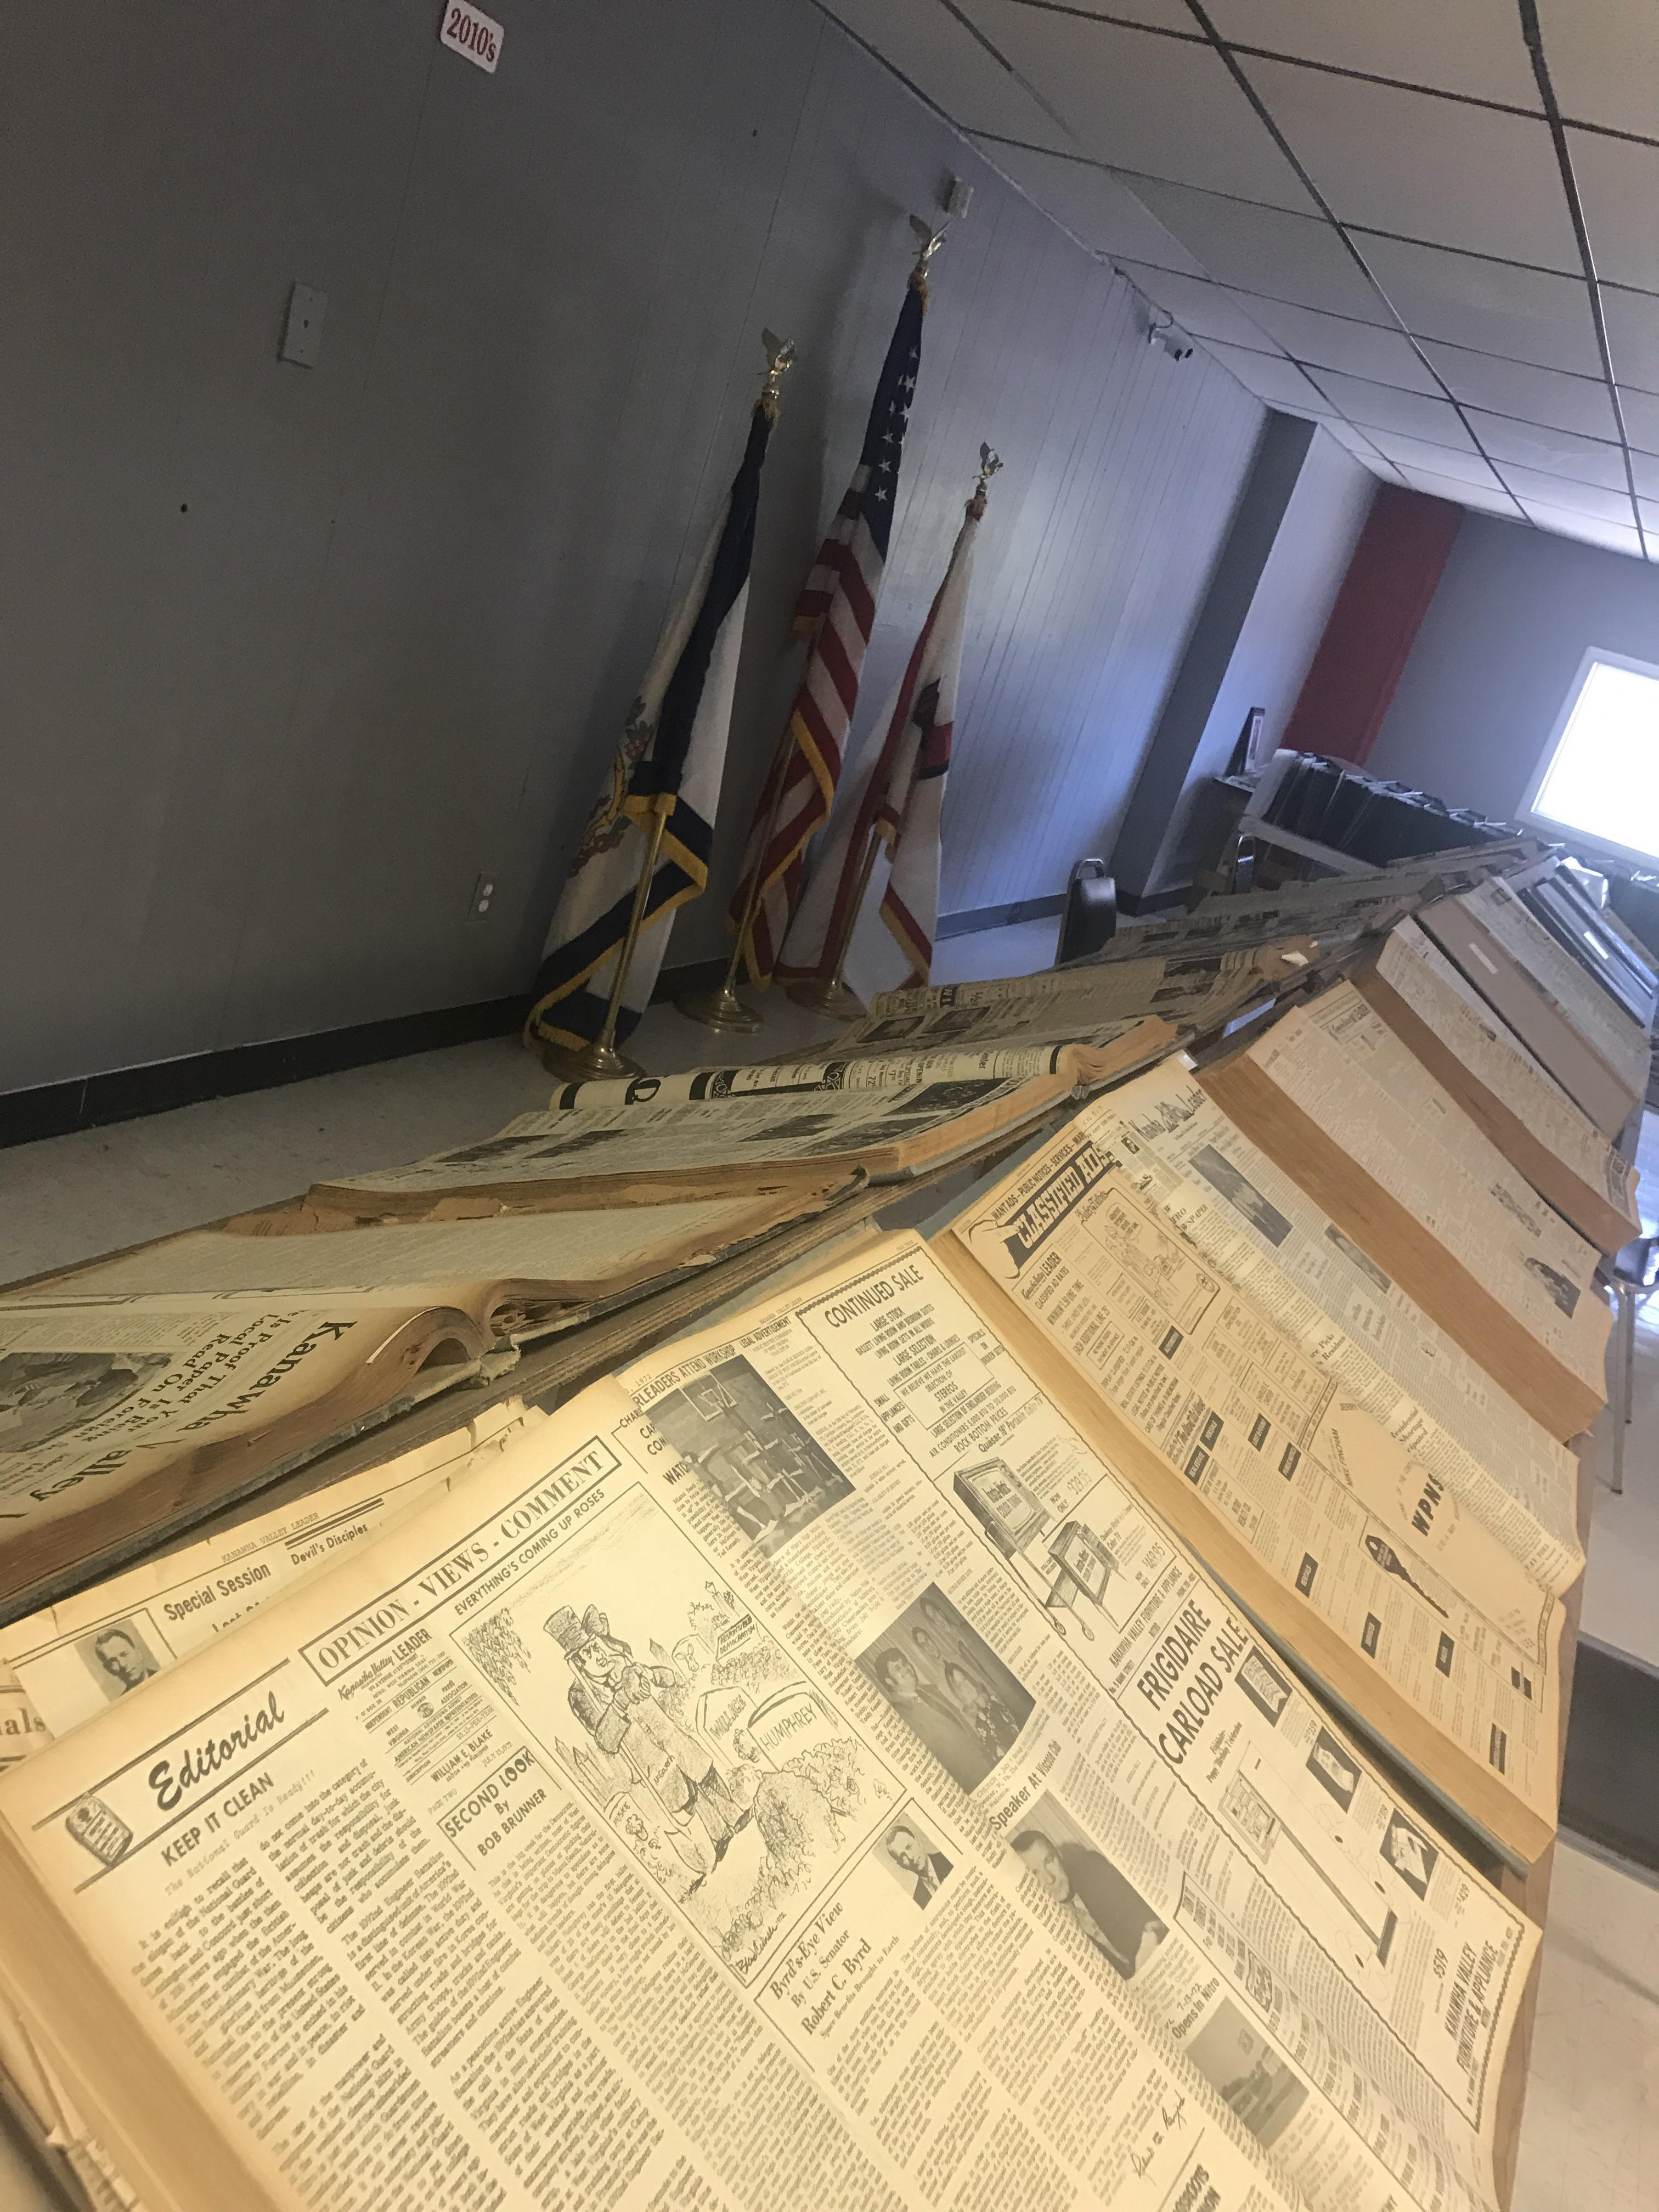 Local newspaper collection